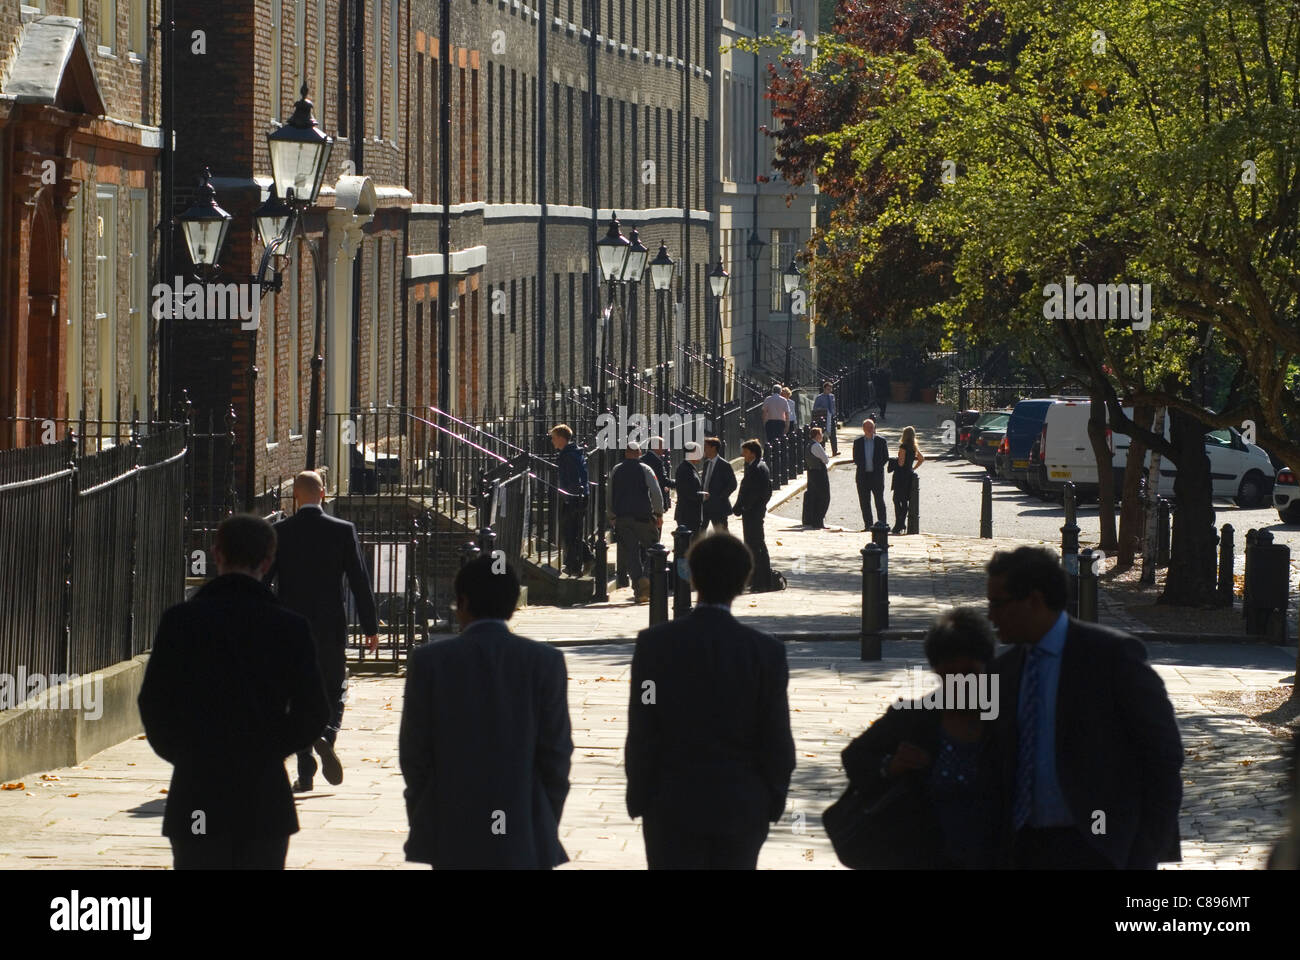 Kings Bench Walk Inner Temple. Inns of Court. Solicitors Chambers buildings. London UK HOMER SYKES - Stock Image